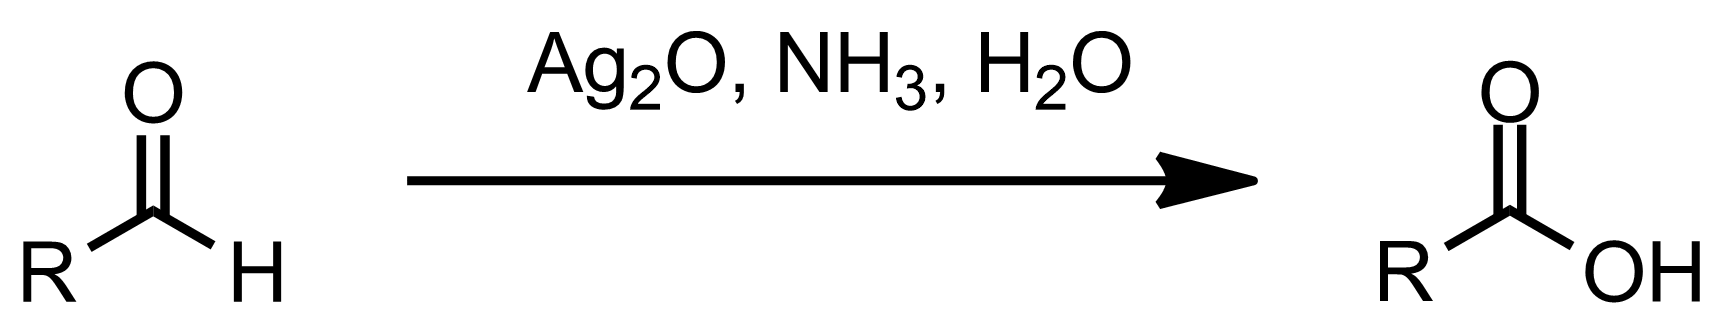 Schematic representation of the Tollens Oxidation.